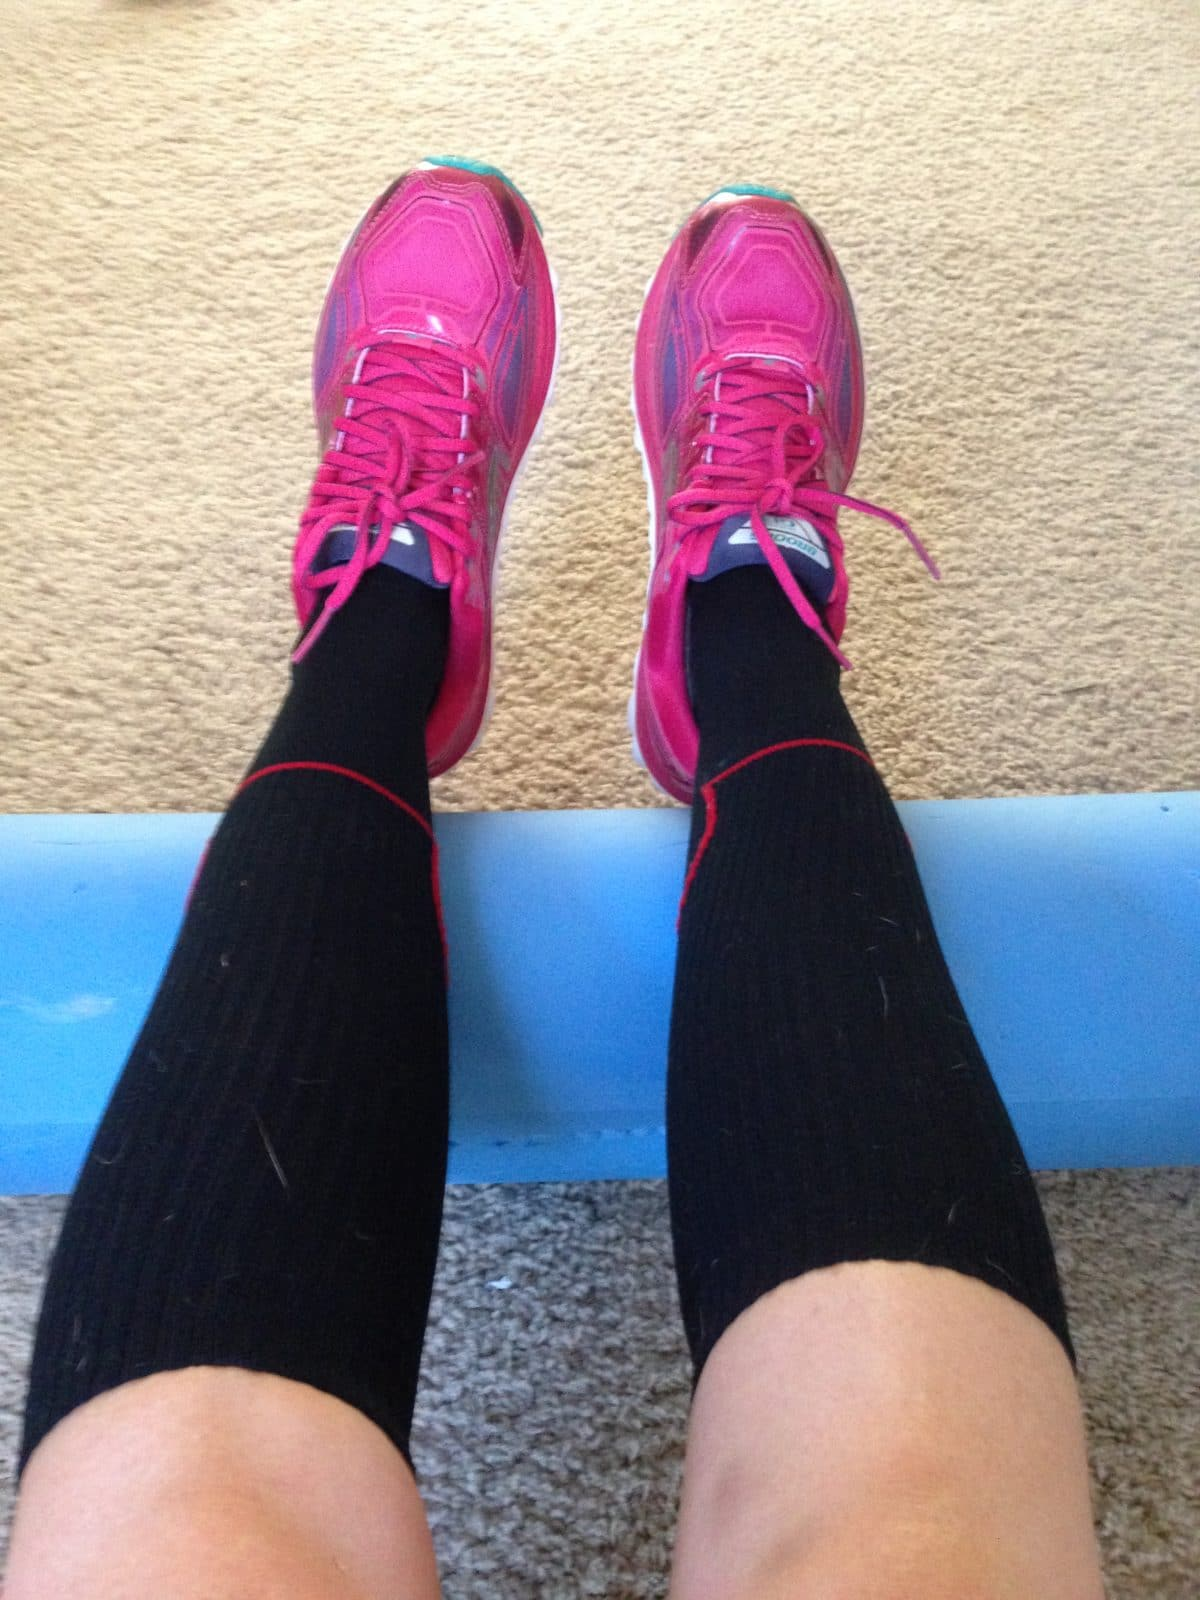 foam-roller-brooks-glycerin-running